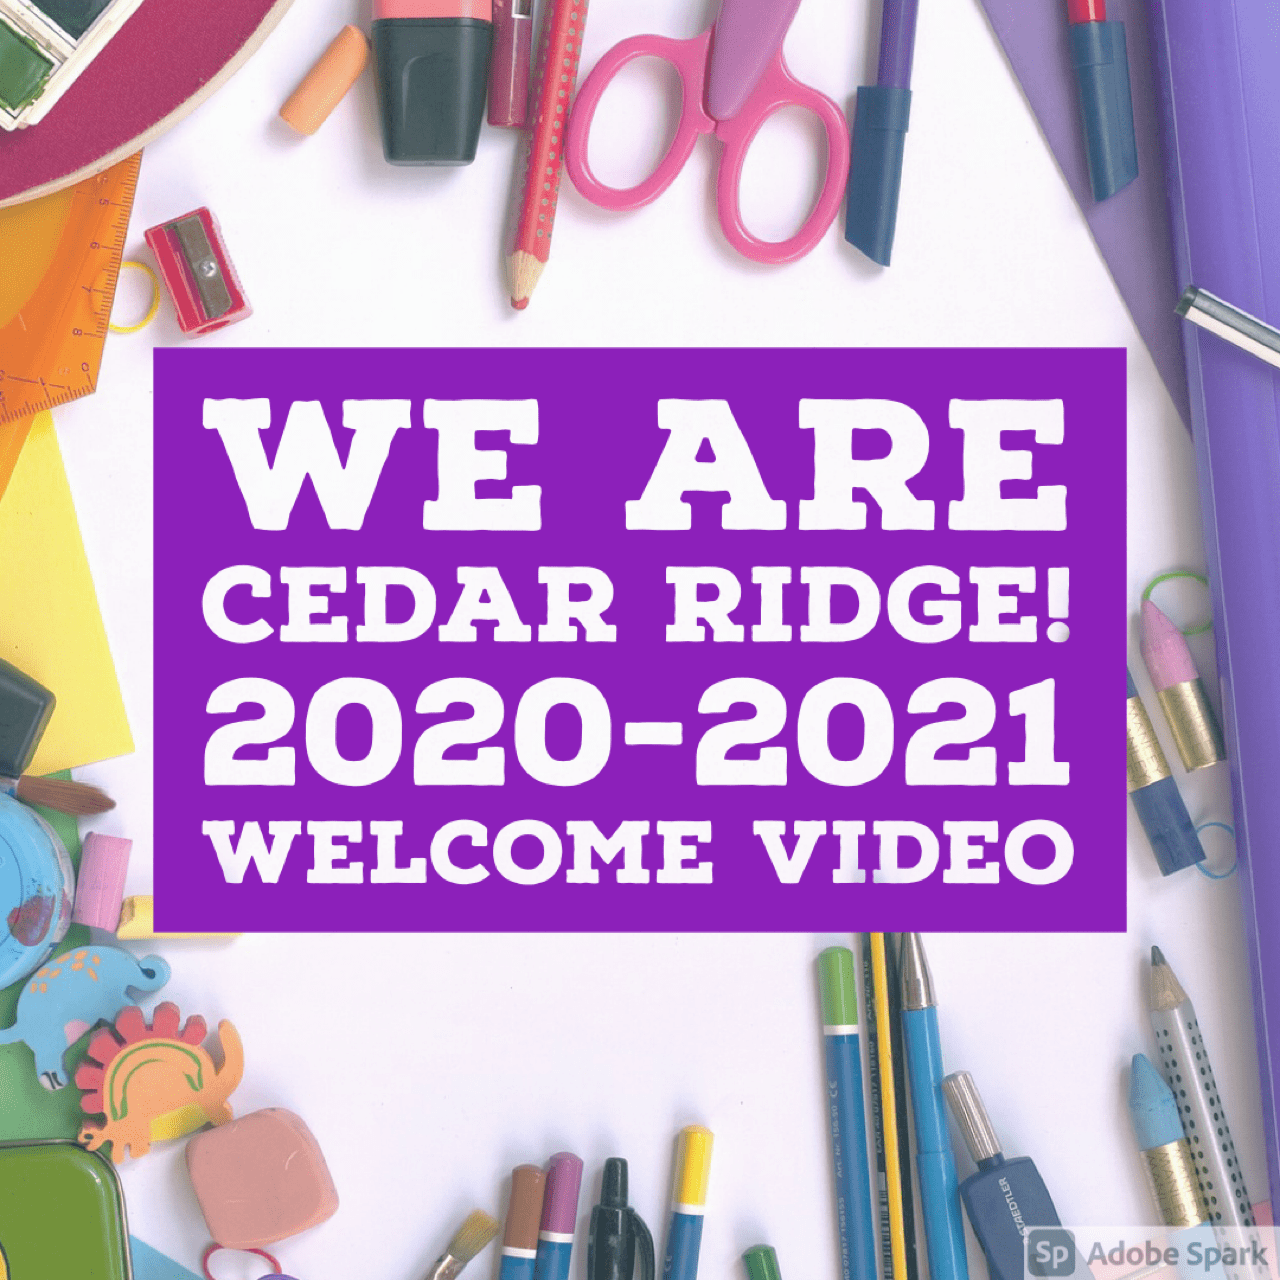 We are Cedar Ridge! 2020-2021 Welcome Video